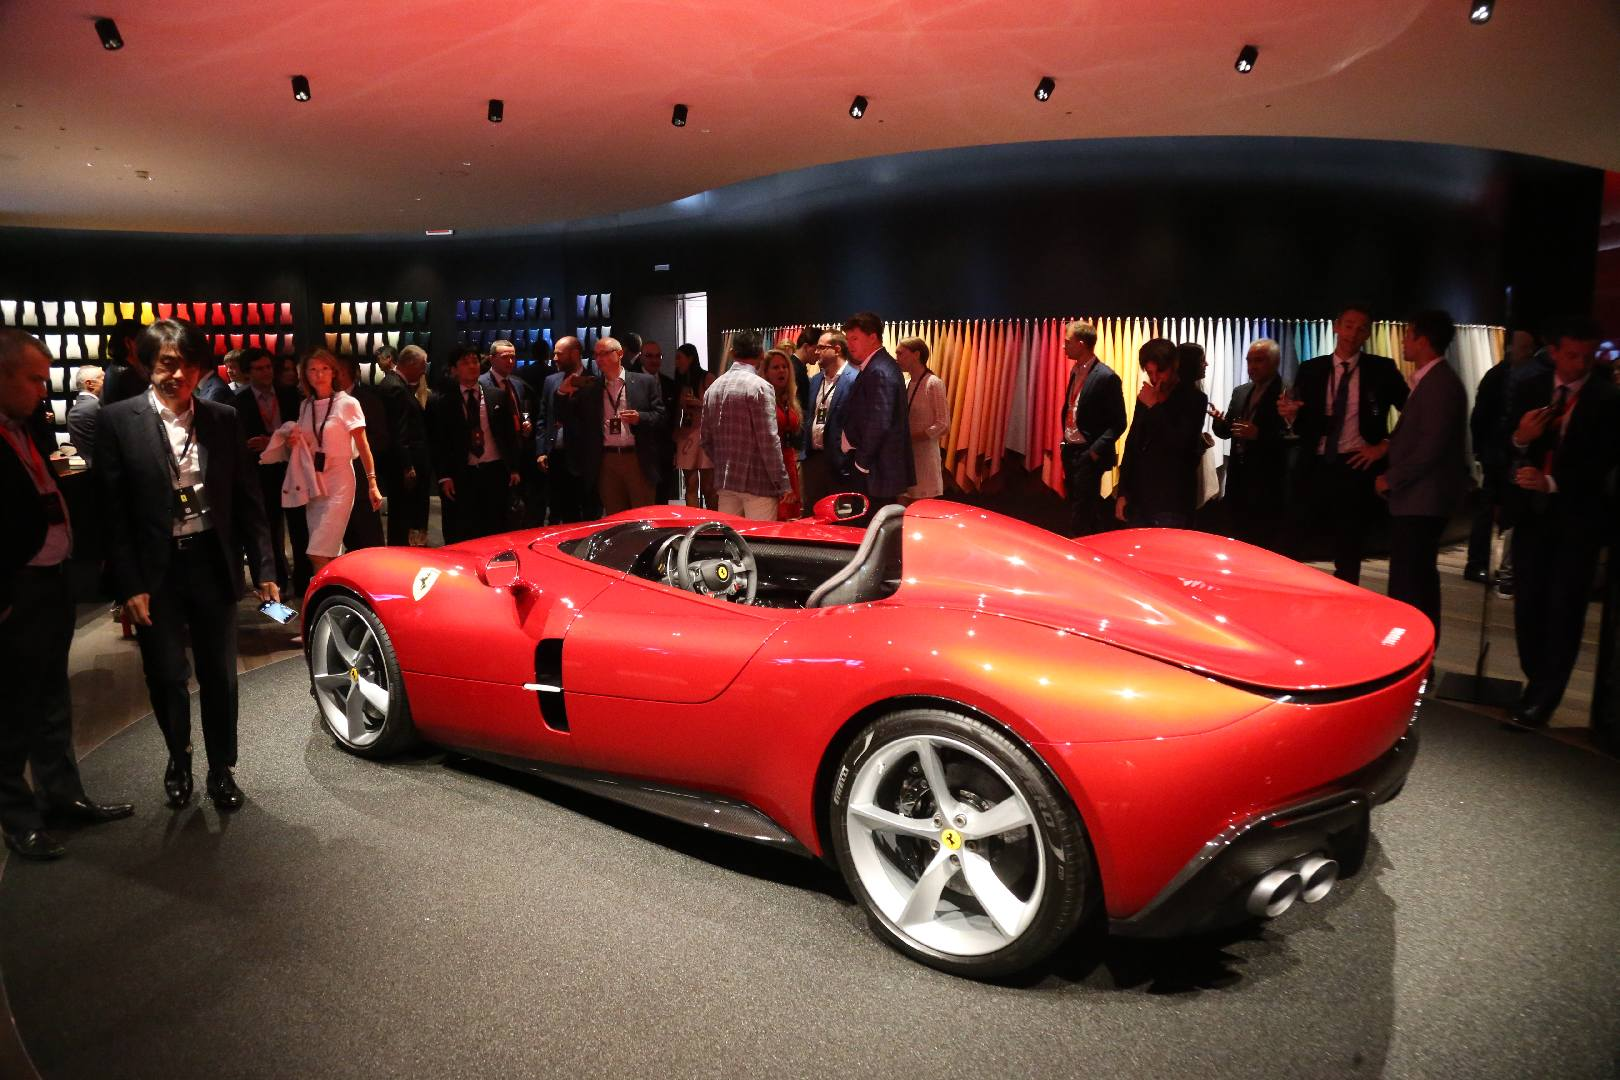 Ferrari Monza Sp1 And Sp2 For Sale Supercars For Sale